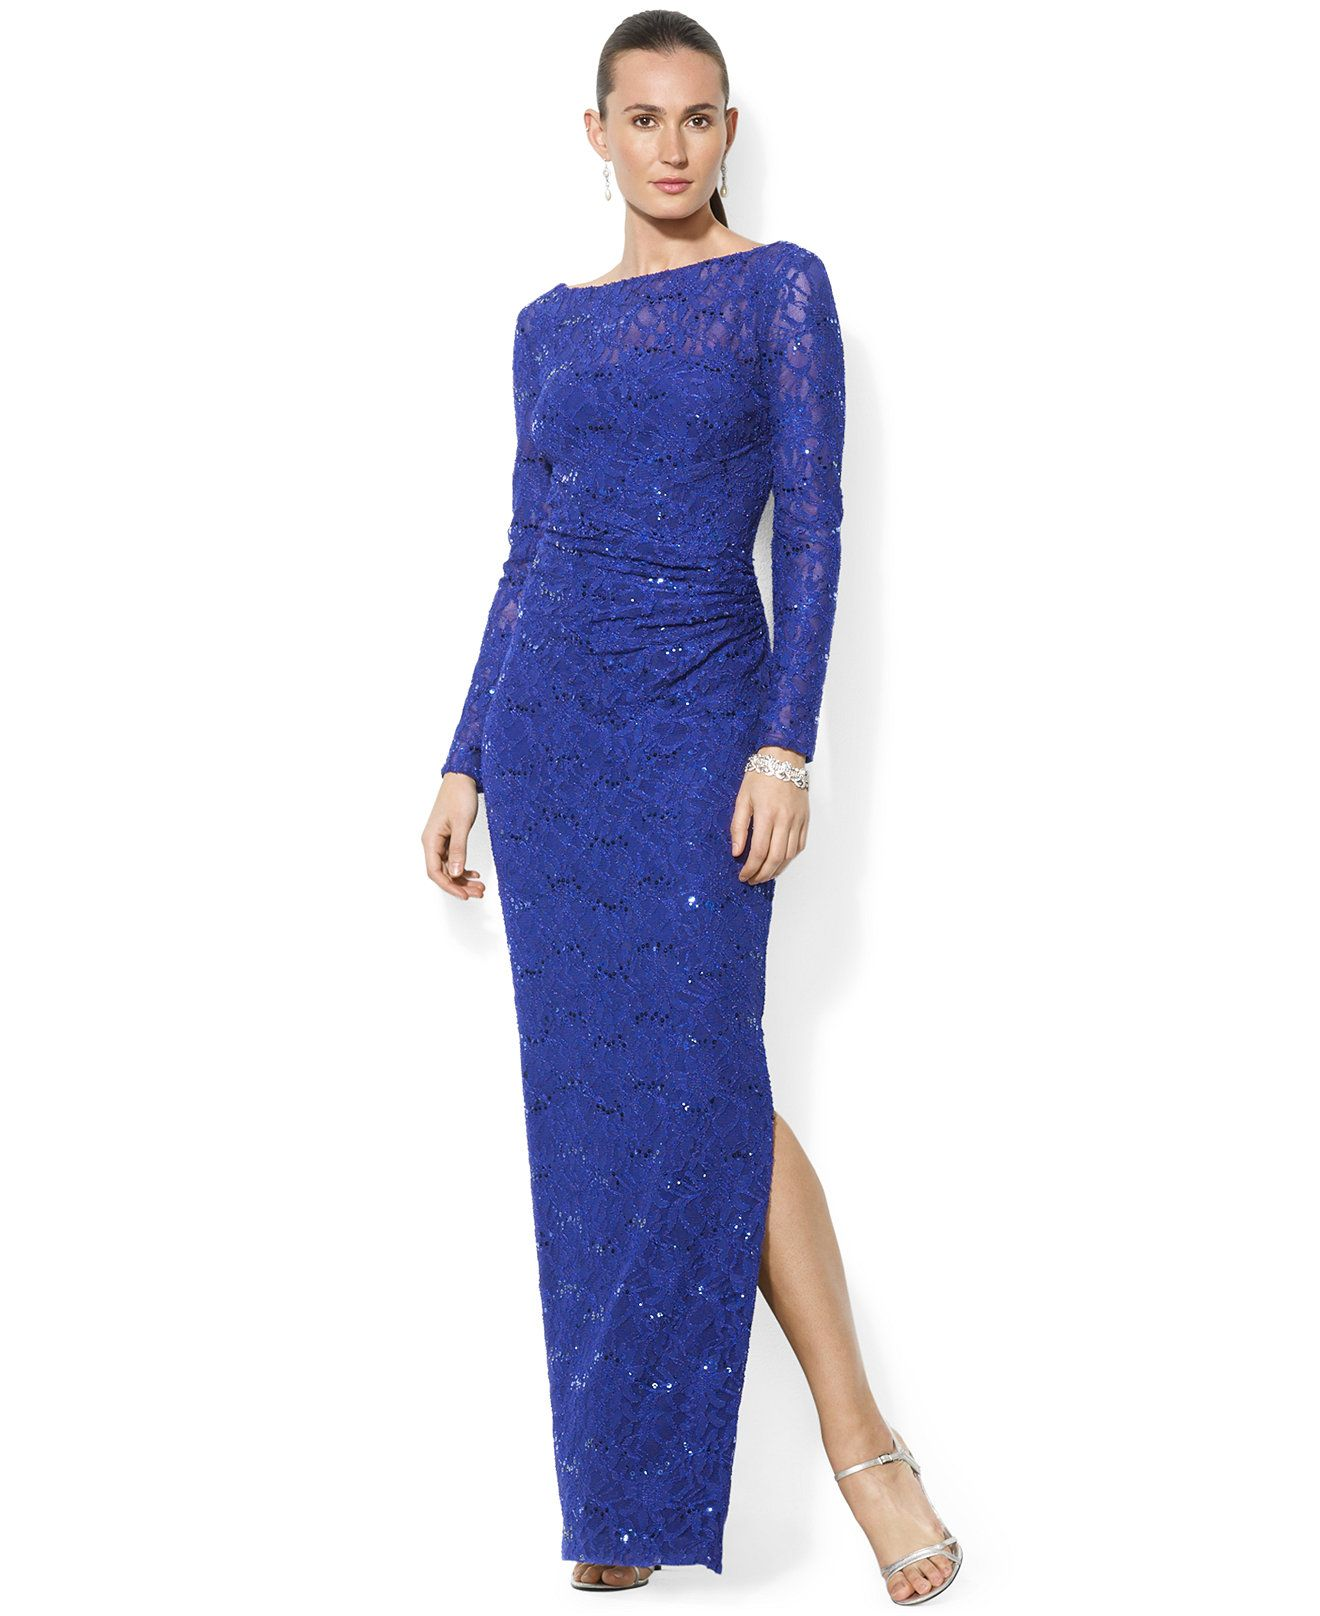 Lauren Ralph Lauren Sequined Lace Gown - Dresses - Women - Macy\'s ...